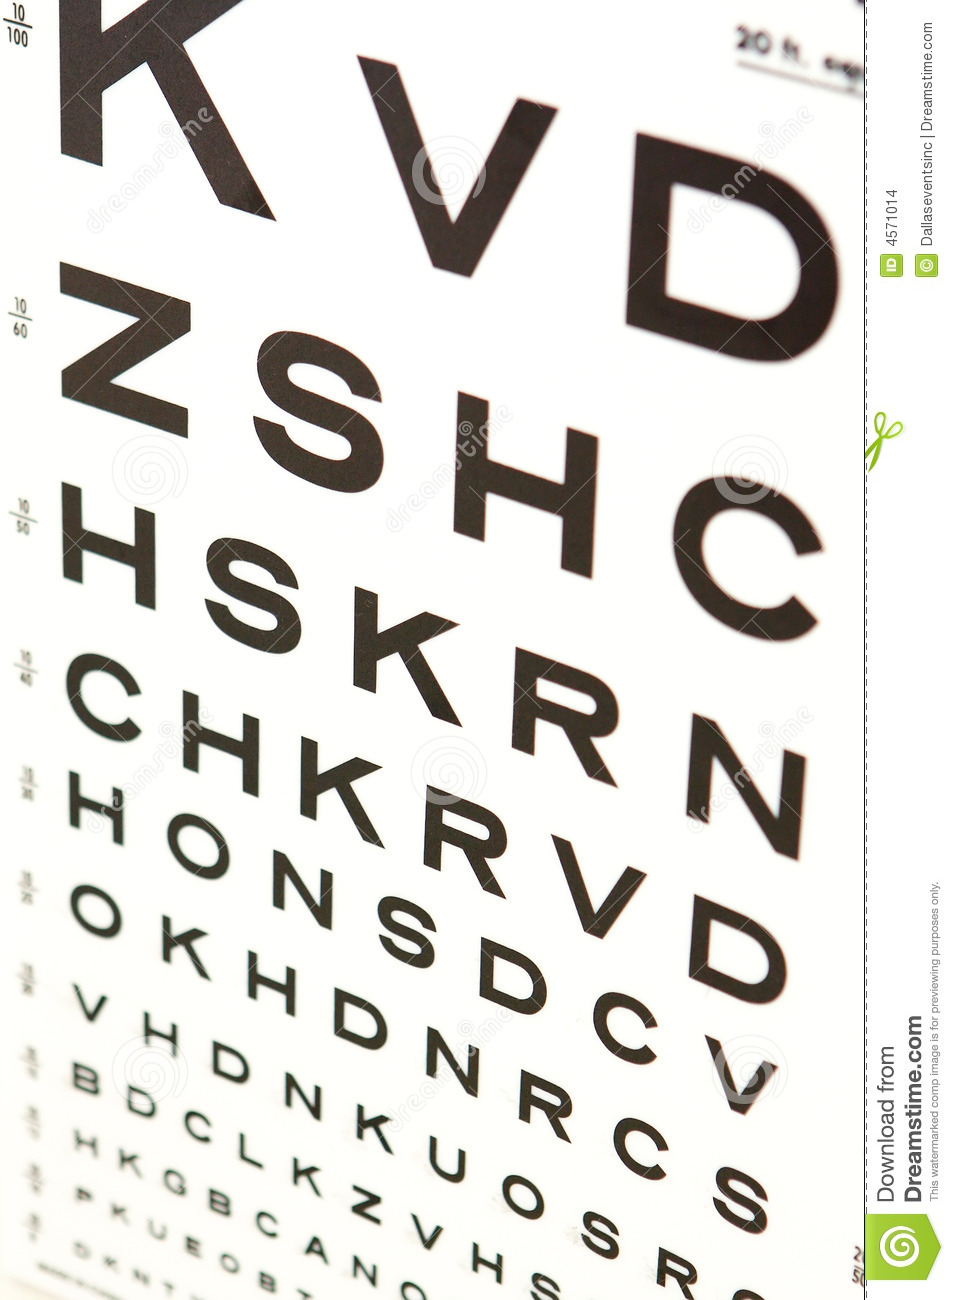 Vision eye test chart stock photo image of care brain 4571014 vision eye test chart care brain geenschuldenfo Image collections